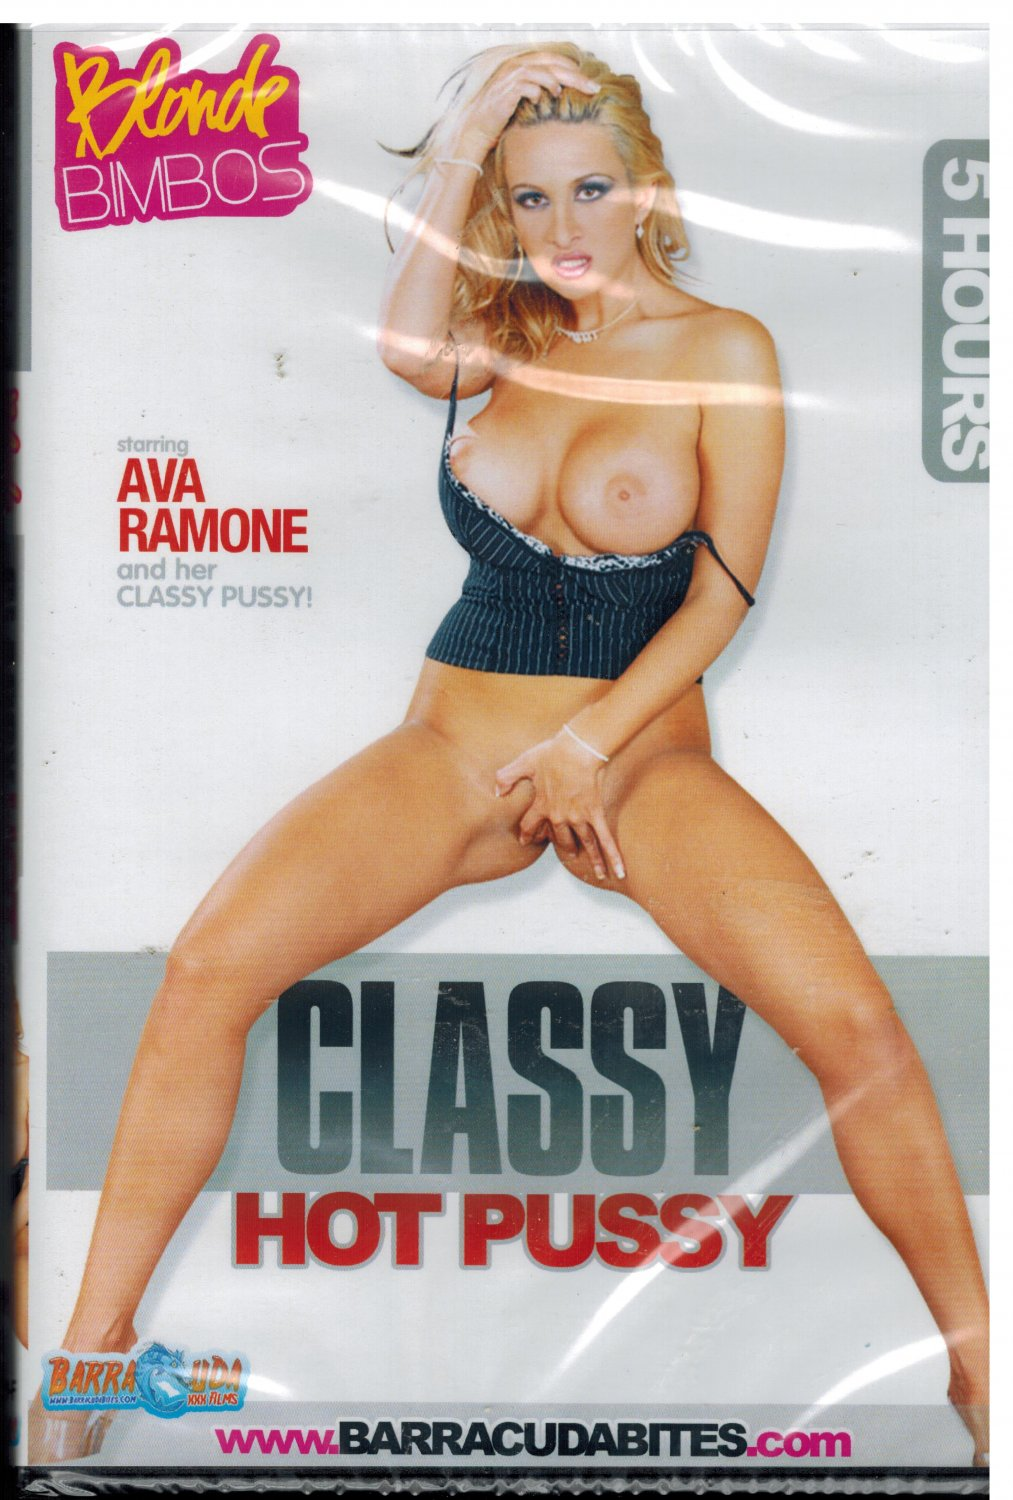 Classy Hot Pussy All Sex Big Tits Buy 3 Get 1 Free